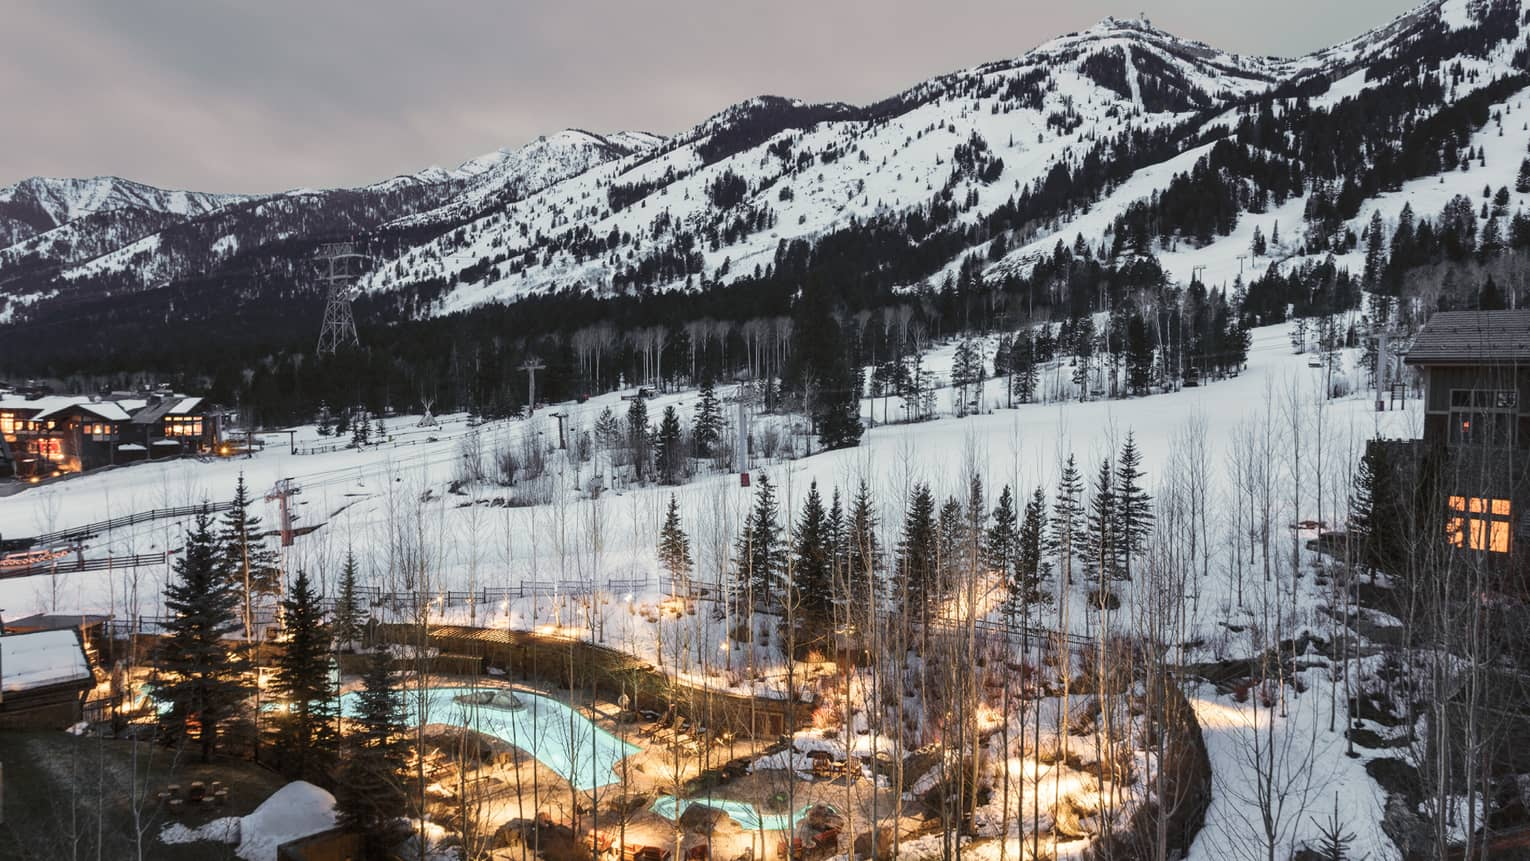 Aerial view of illuminated blue outdoor swimming pool through trees on snowy hill at dusk